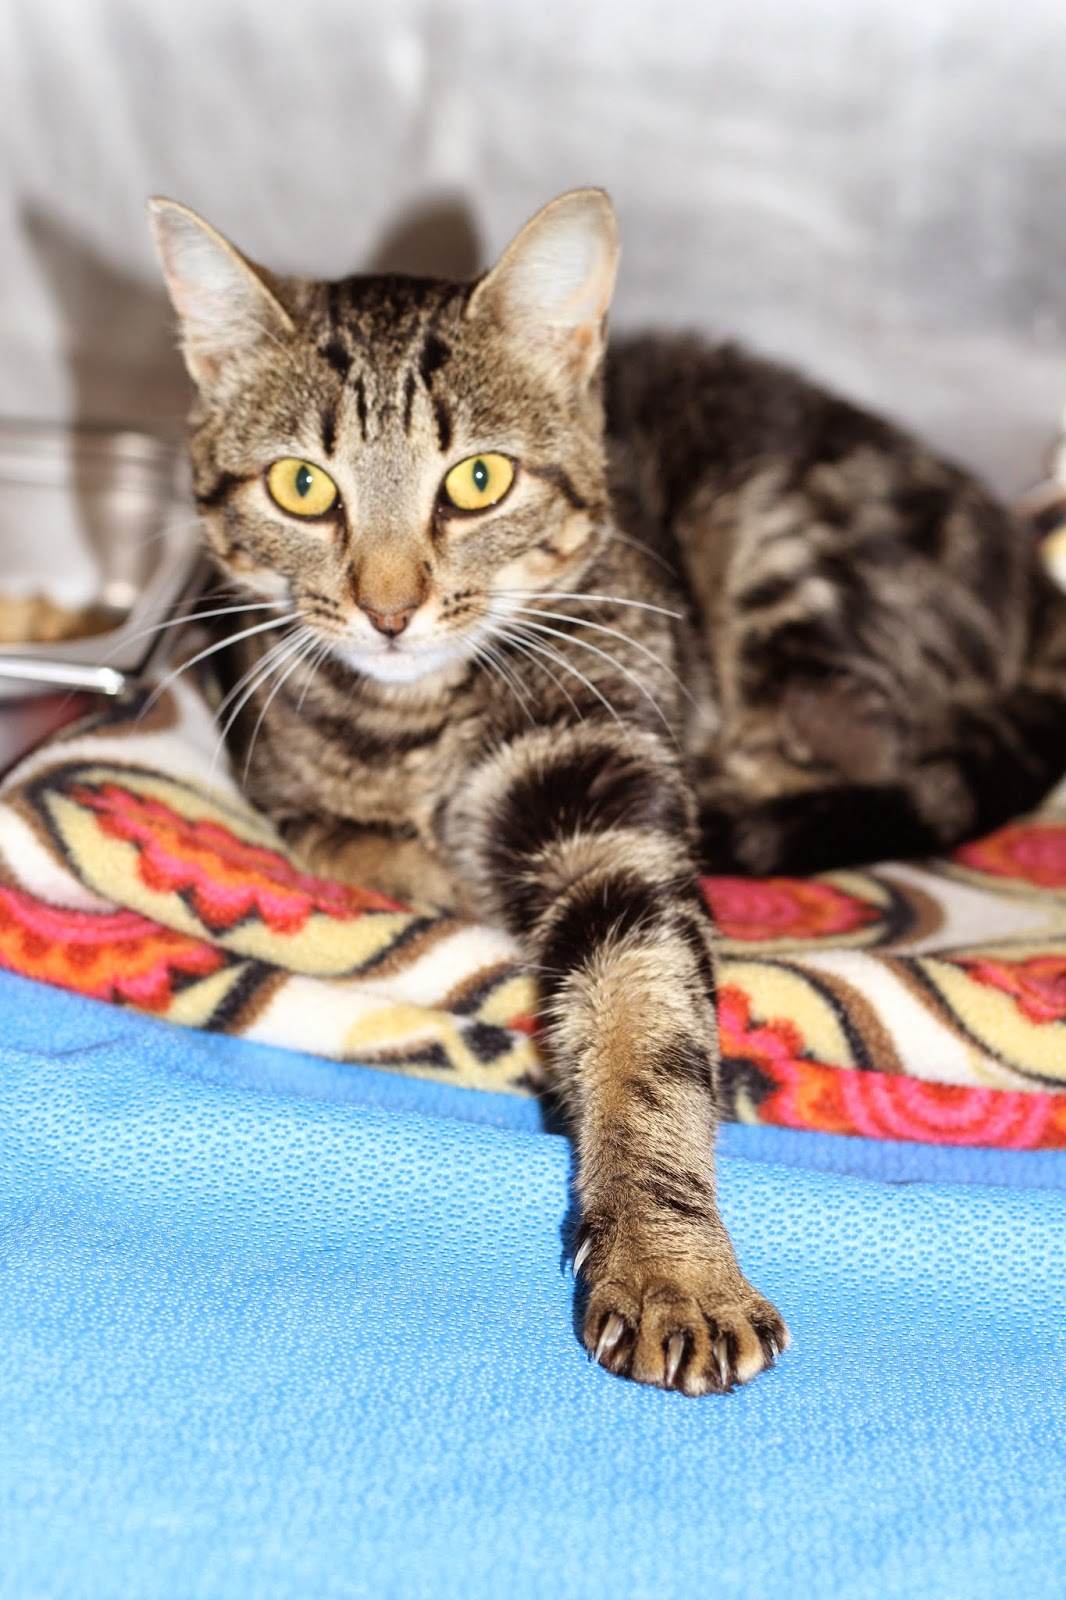 Declawing Cats Humane Declawing Cats Can Cause